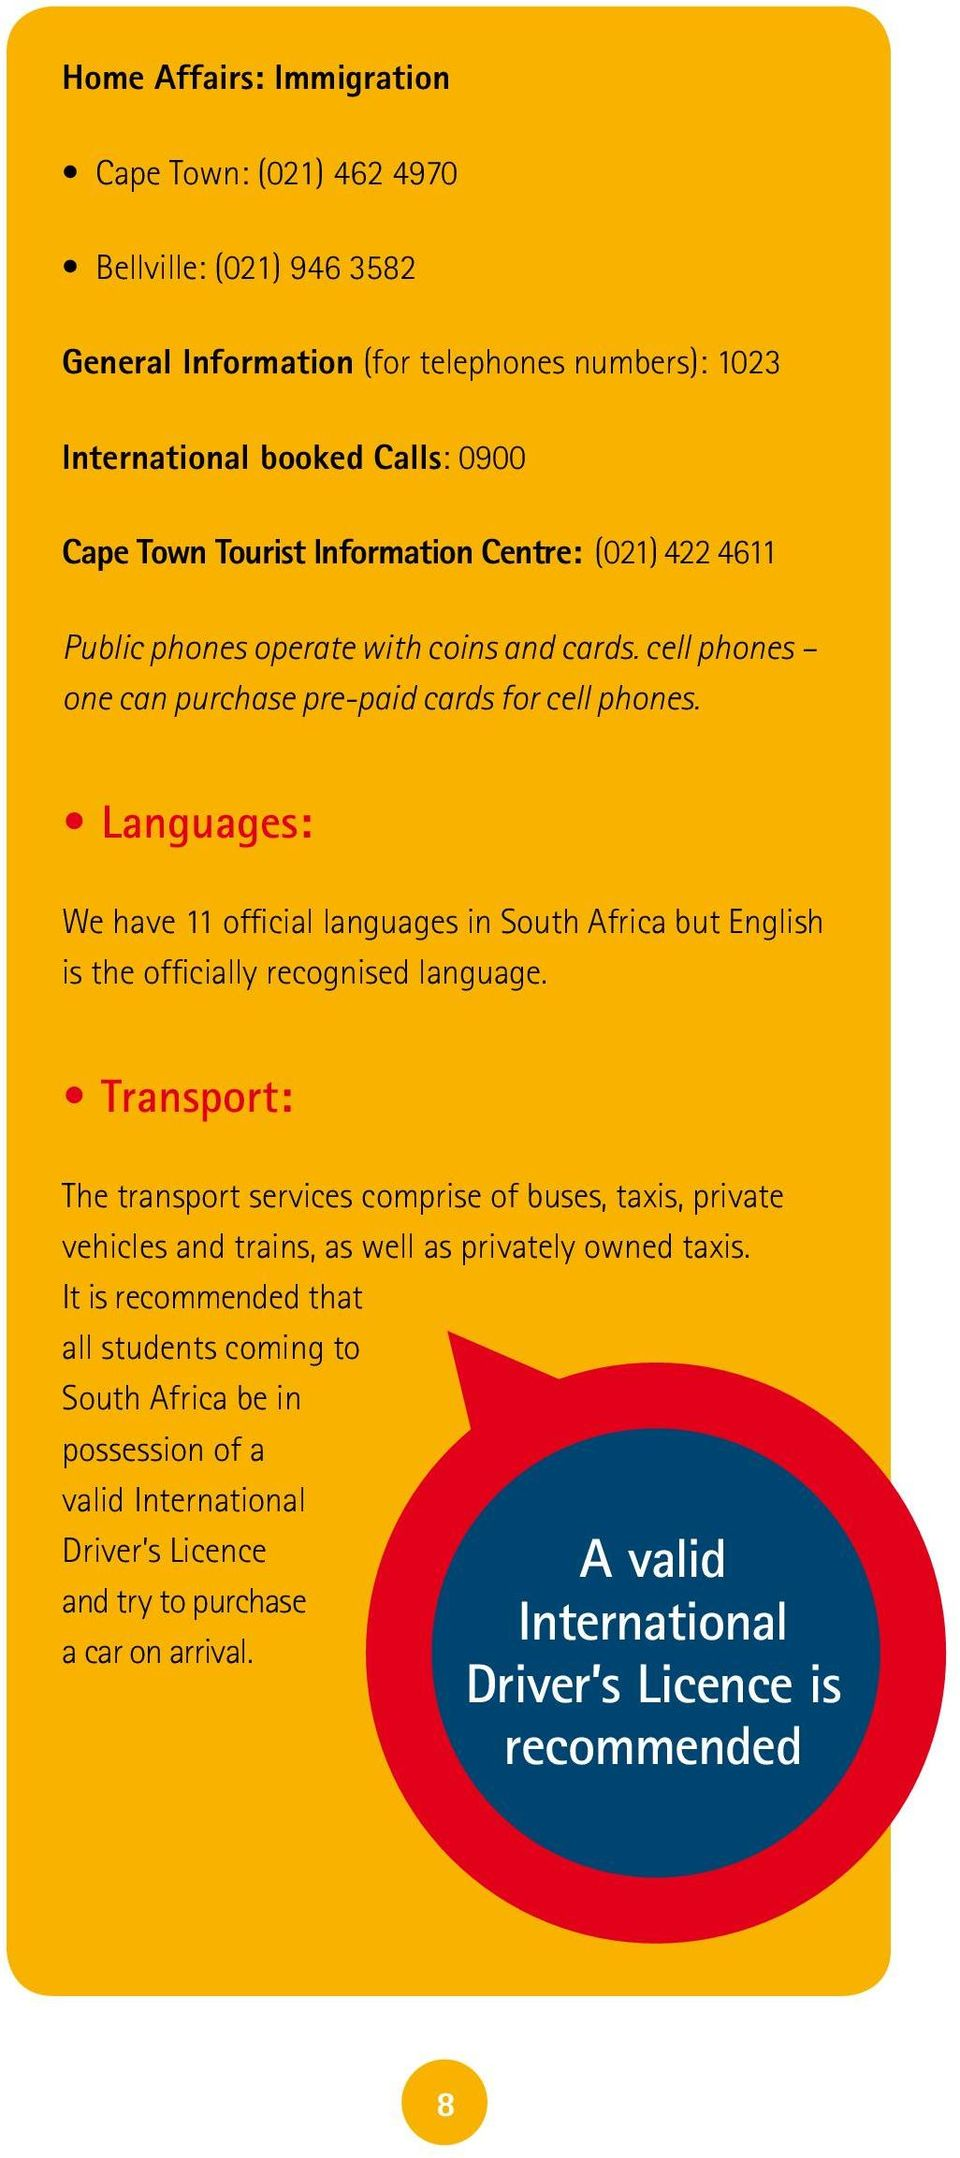 Languages: We have 11 official languages in South Africa but English is the officially recognised language.